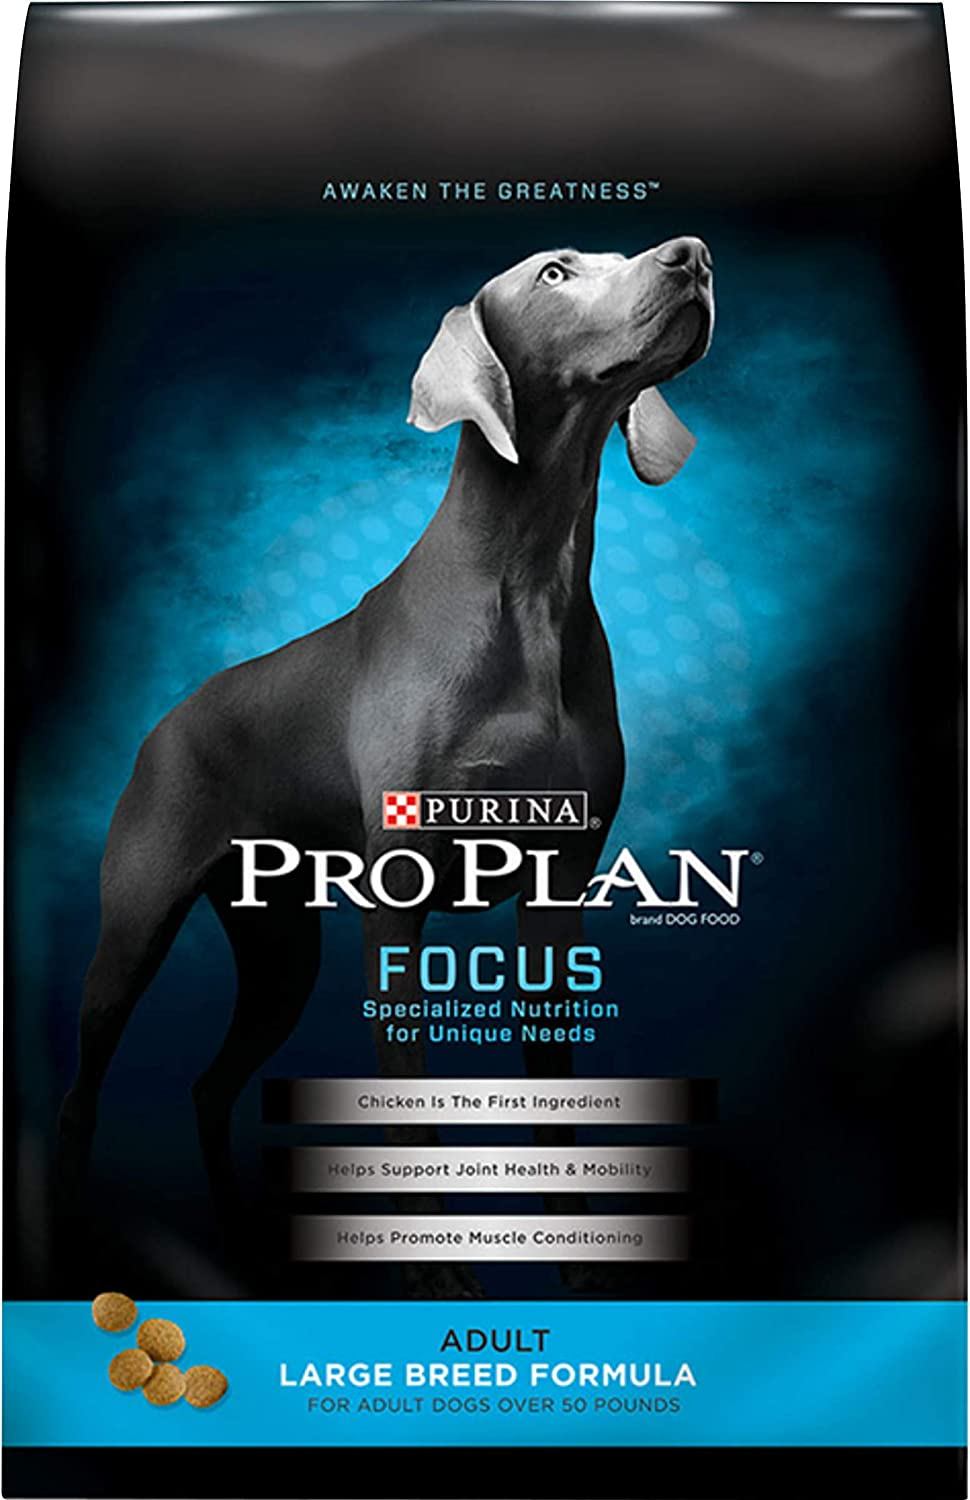 5. Purina Pro Plan Focus Large Breed